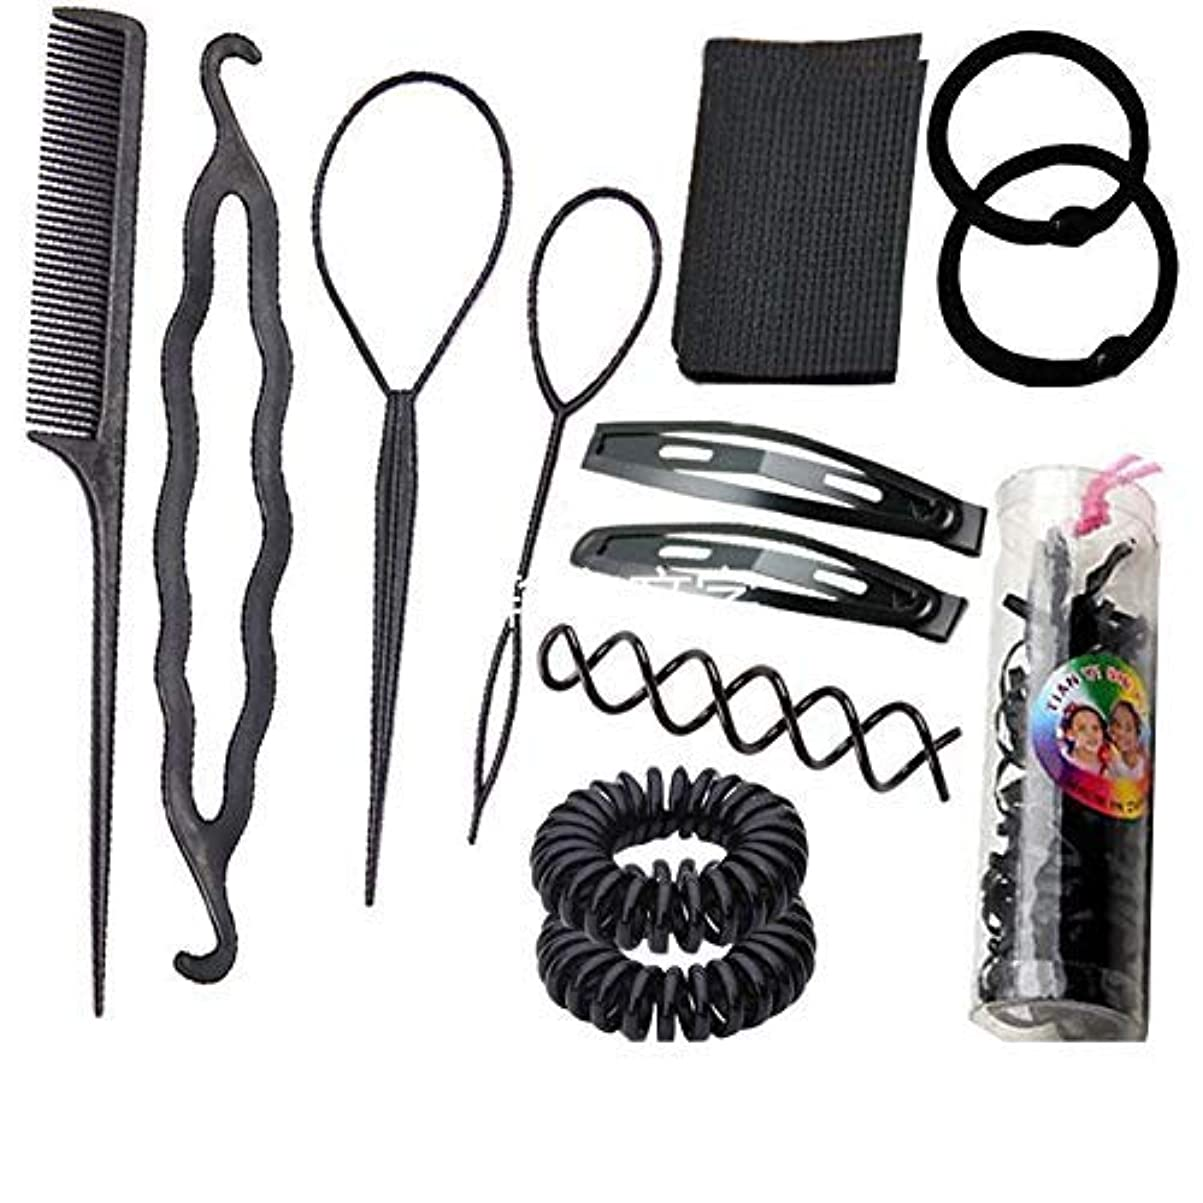 百科事典襟境界1 Set Black 13 in 1 Hair Style Making Accessories Kits Hair Comb Metal Hairpins Hair Tools Hair Ropes Fringes...